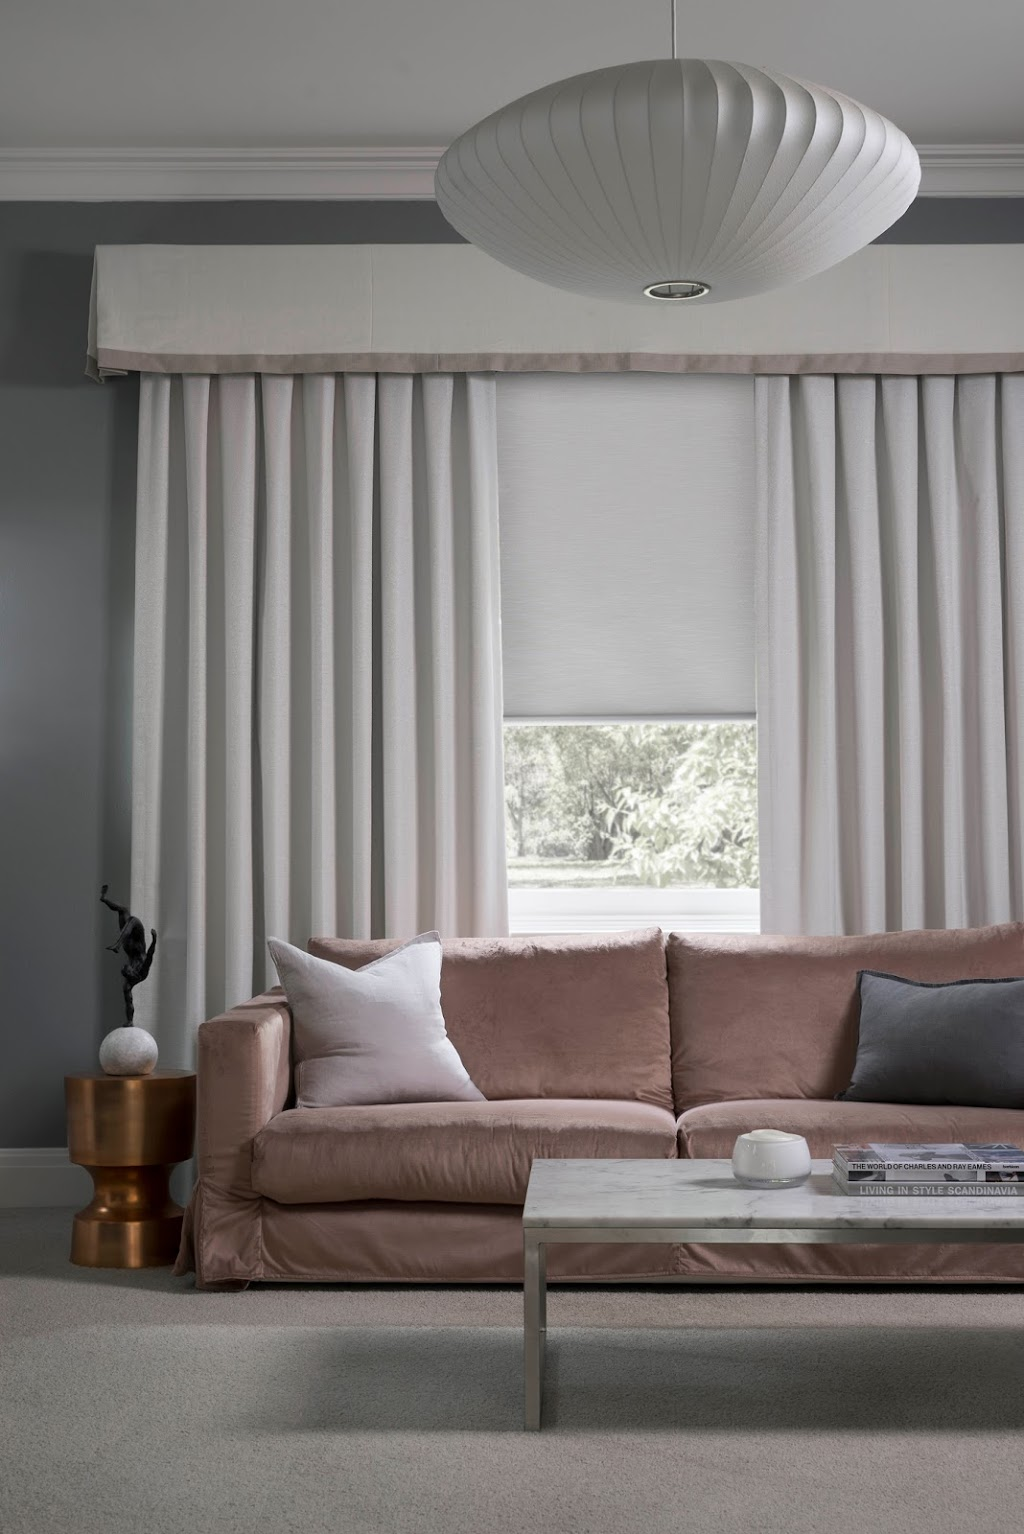 Dollar Curtains + Blinds Warrnambool - Temporarily Closed | home goods store | 325 Murray St, Colac VIC 3250, Australia | 0352311494 OR +61 3 5231 1494